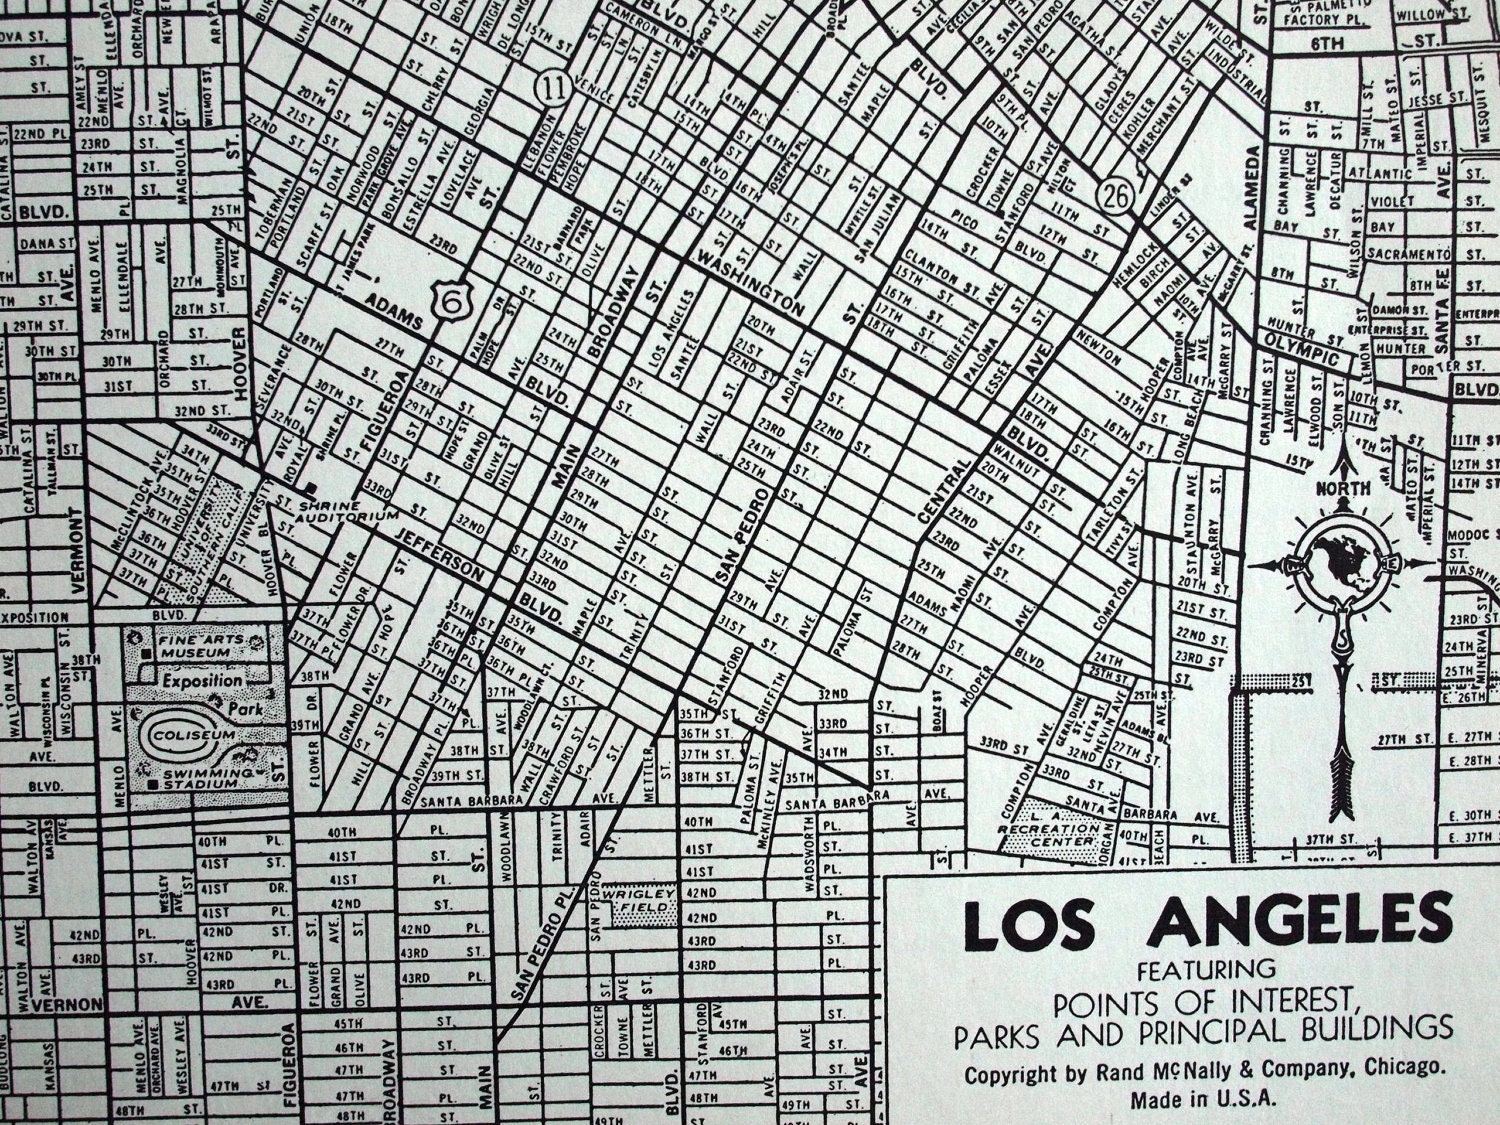 Vintage Map Of Los Angeles California Featuring Points - Los angeles map vintage